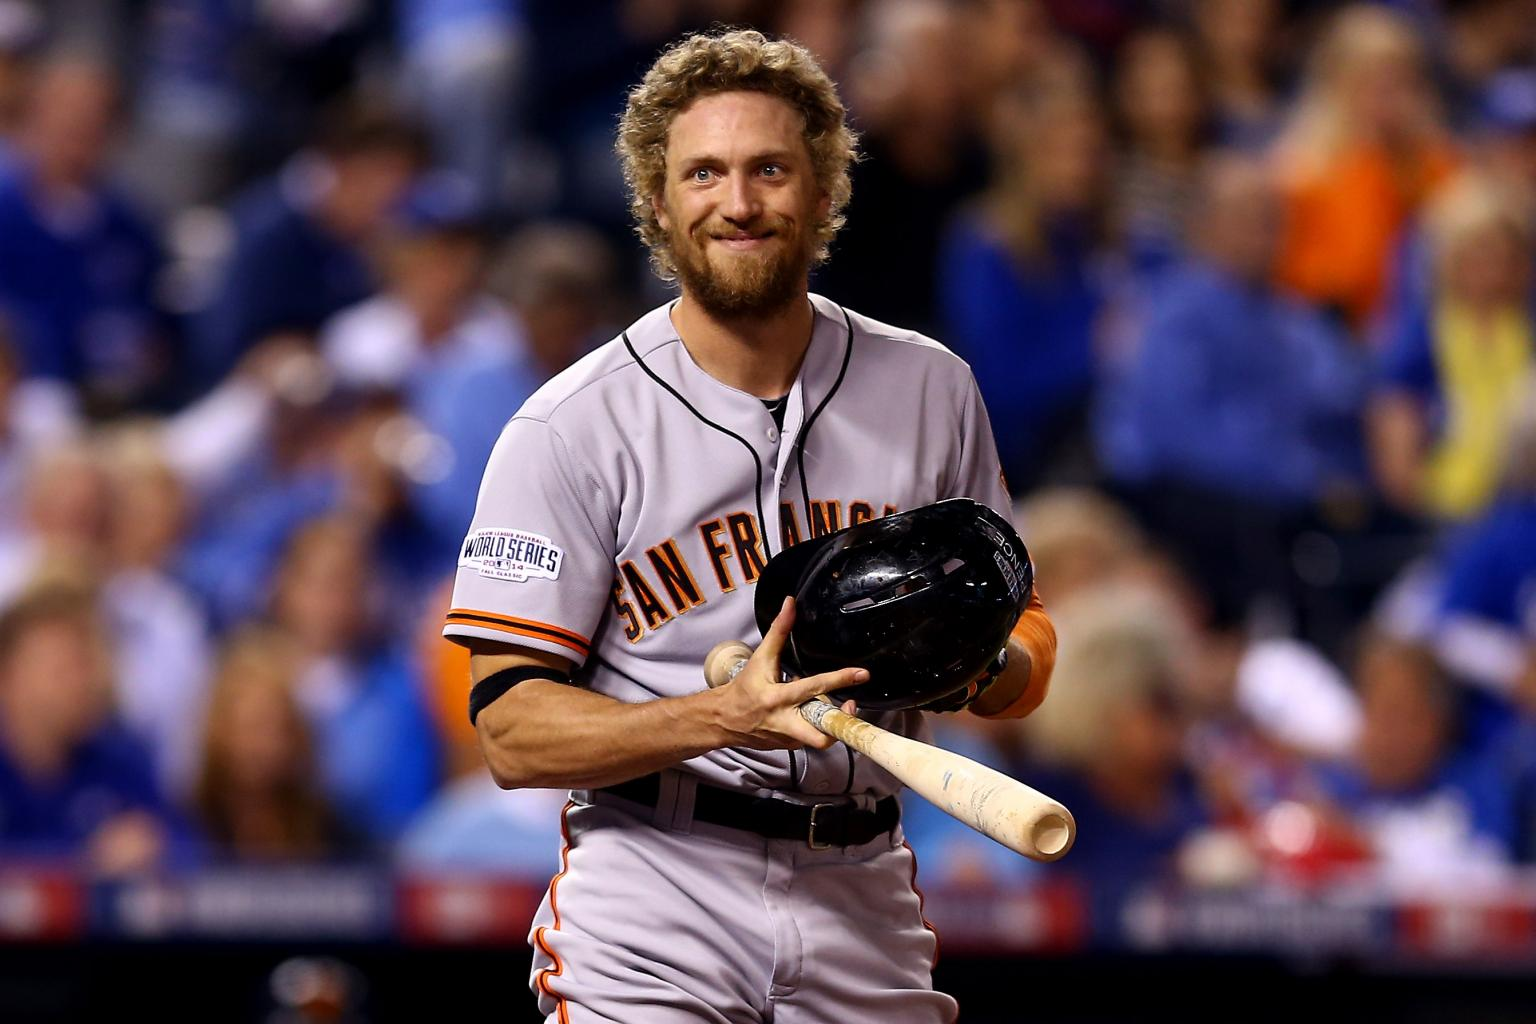 14 Days Until Spring Training: A Hunter Pence Face For Any Situation